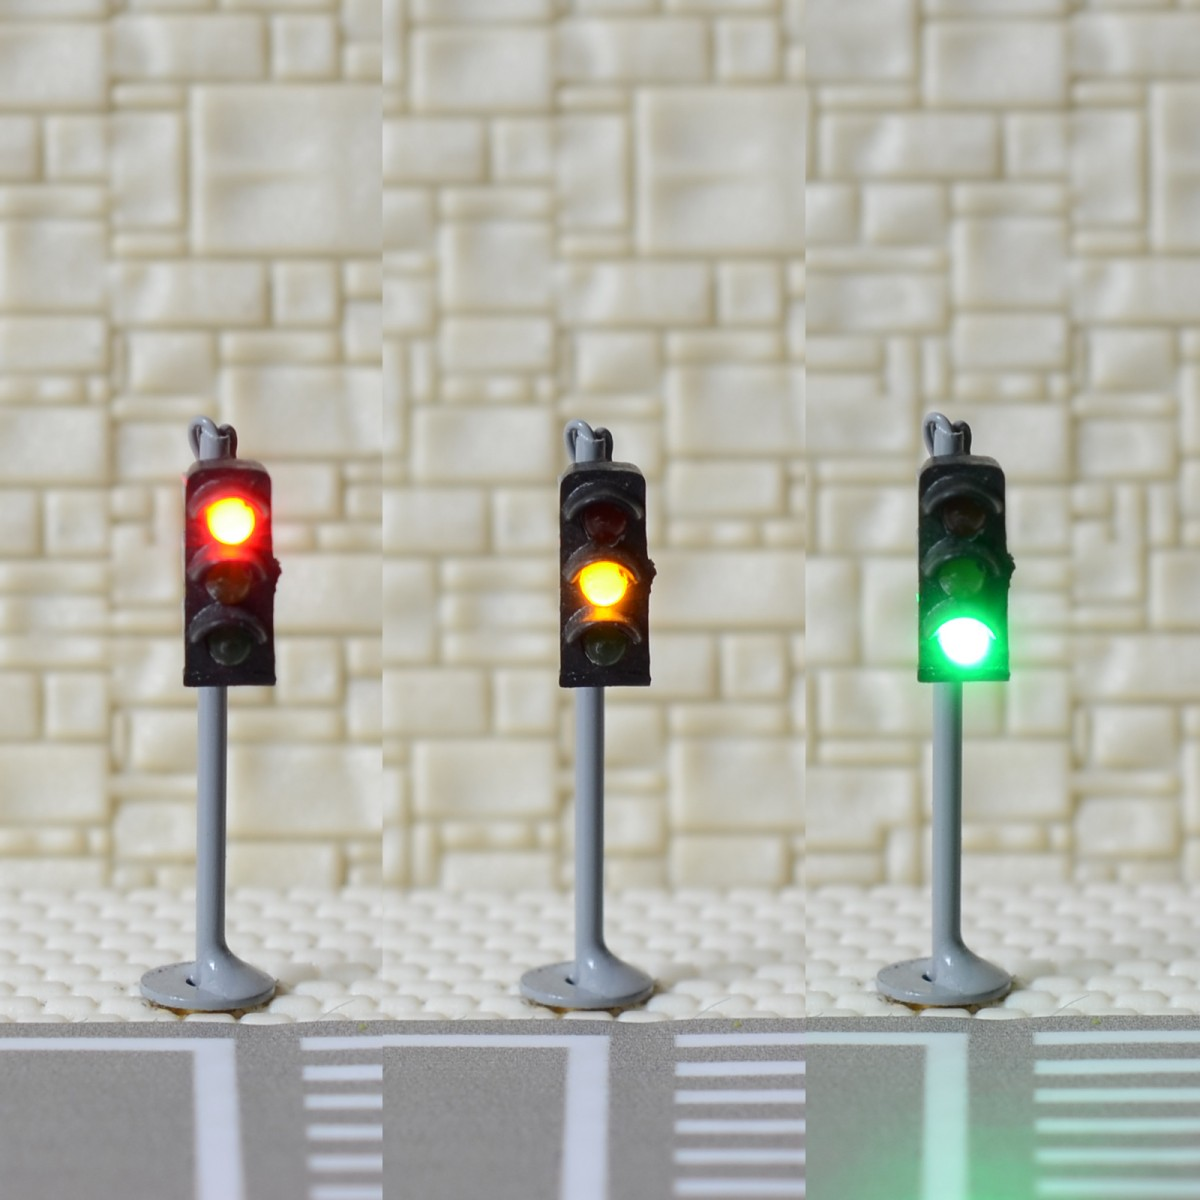 1 x traffic signal light N scale model railroad crossing walk pedestrian #GR3N